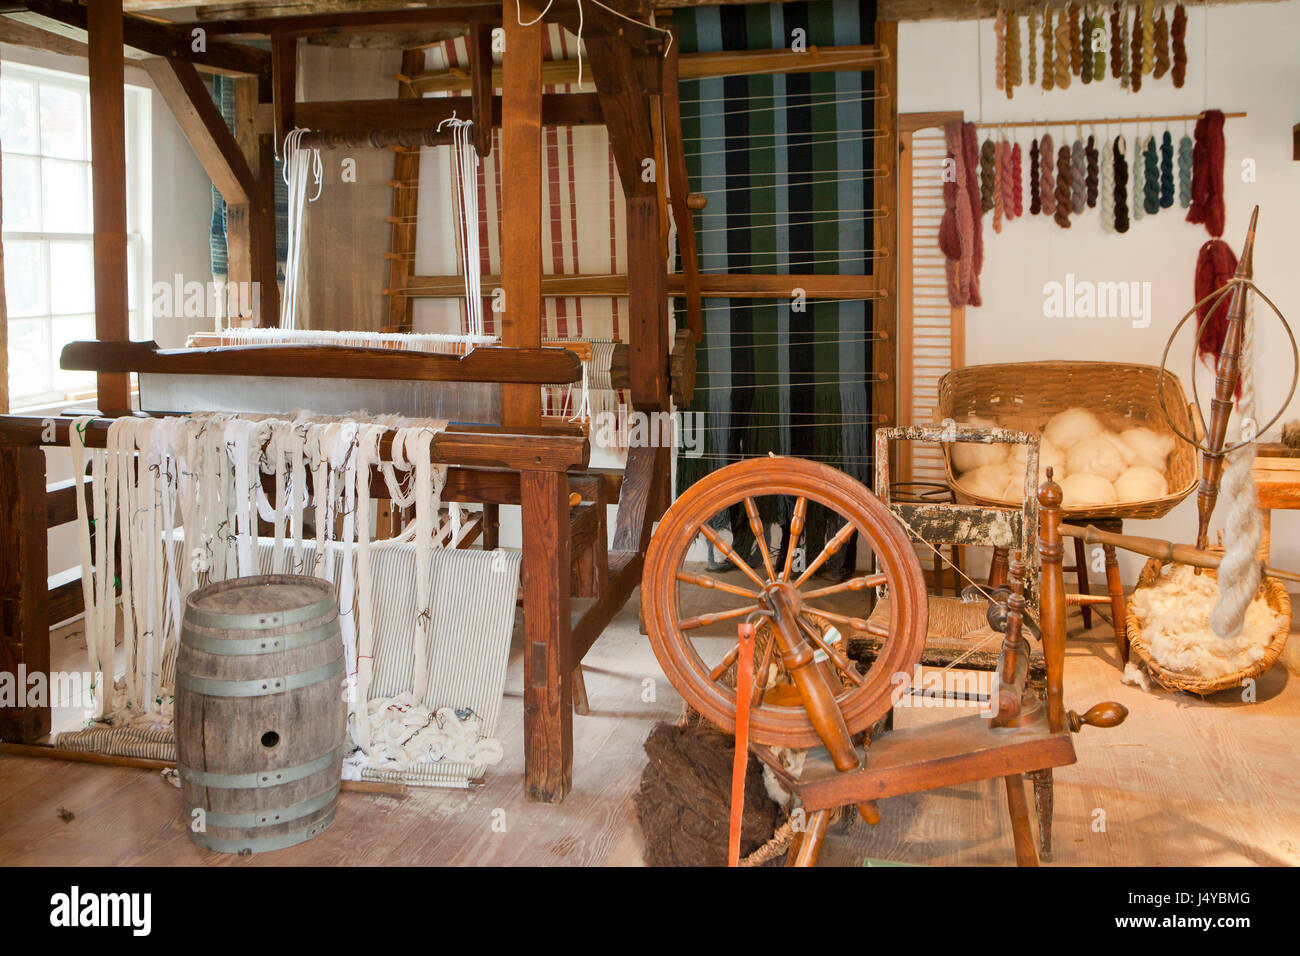 Depiction of a weaver's cottage in the 18th century colonial America - USA - Stock Image